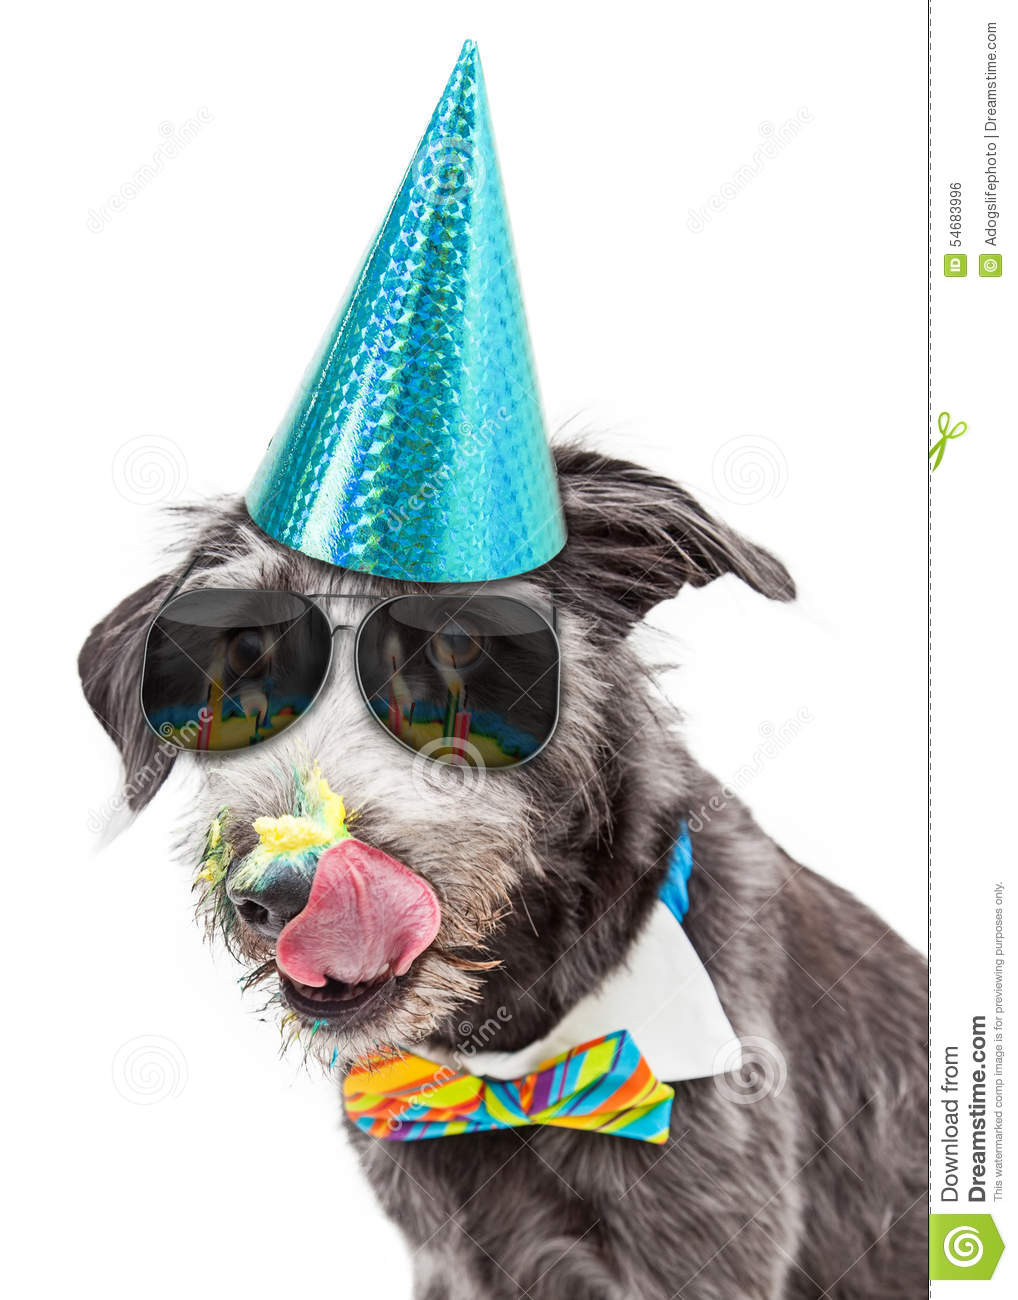 Dog Eating Birthday Cake Image